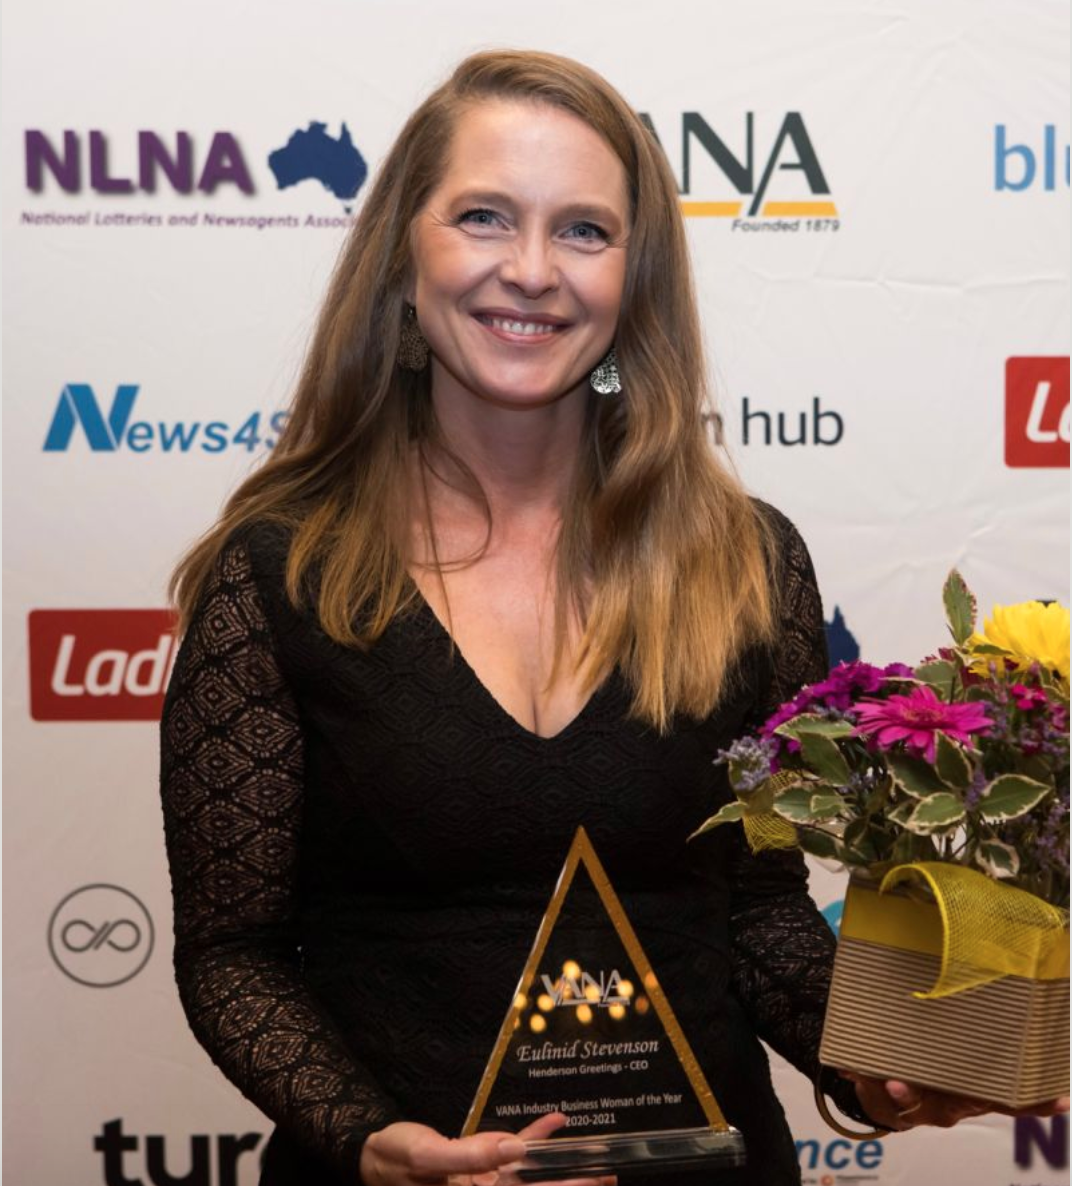 Above: Eulinid Stevenson with her VANA award trophy.